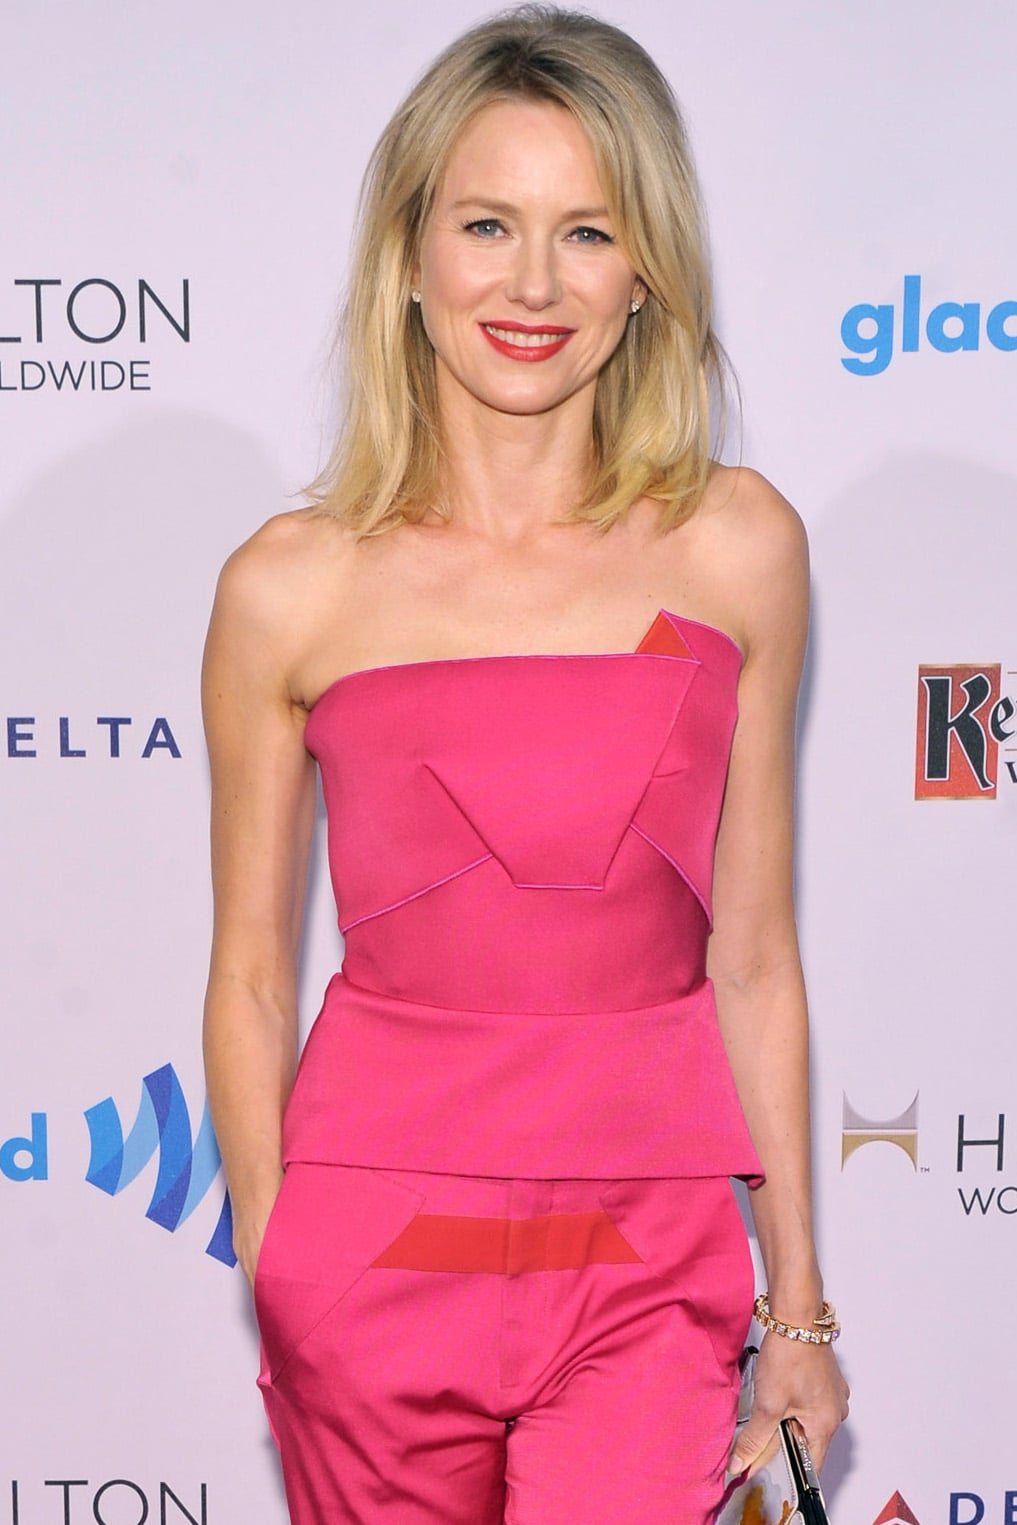 Naomi Watts has signed on for the Divergent sequel, Insurgent, plus the two Allegiant films. She'll play Evelyn, the leader of the Factionless. Check out the full cast of Insurgent!